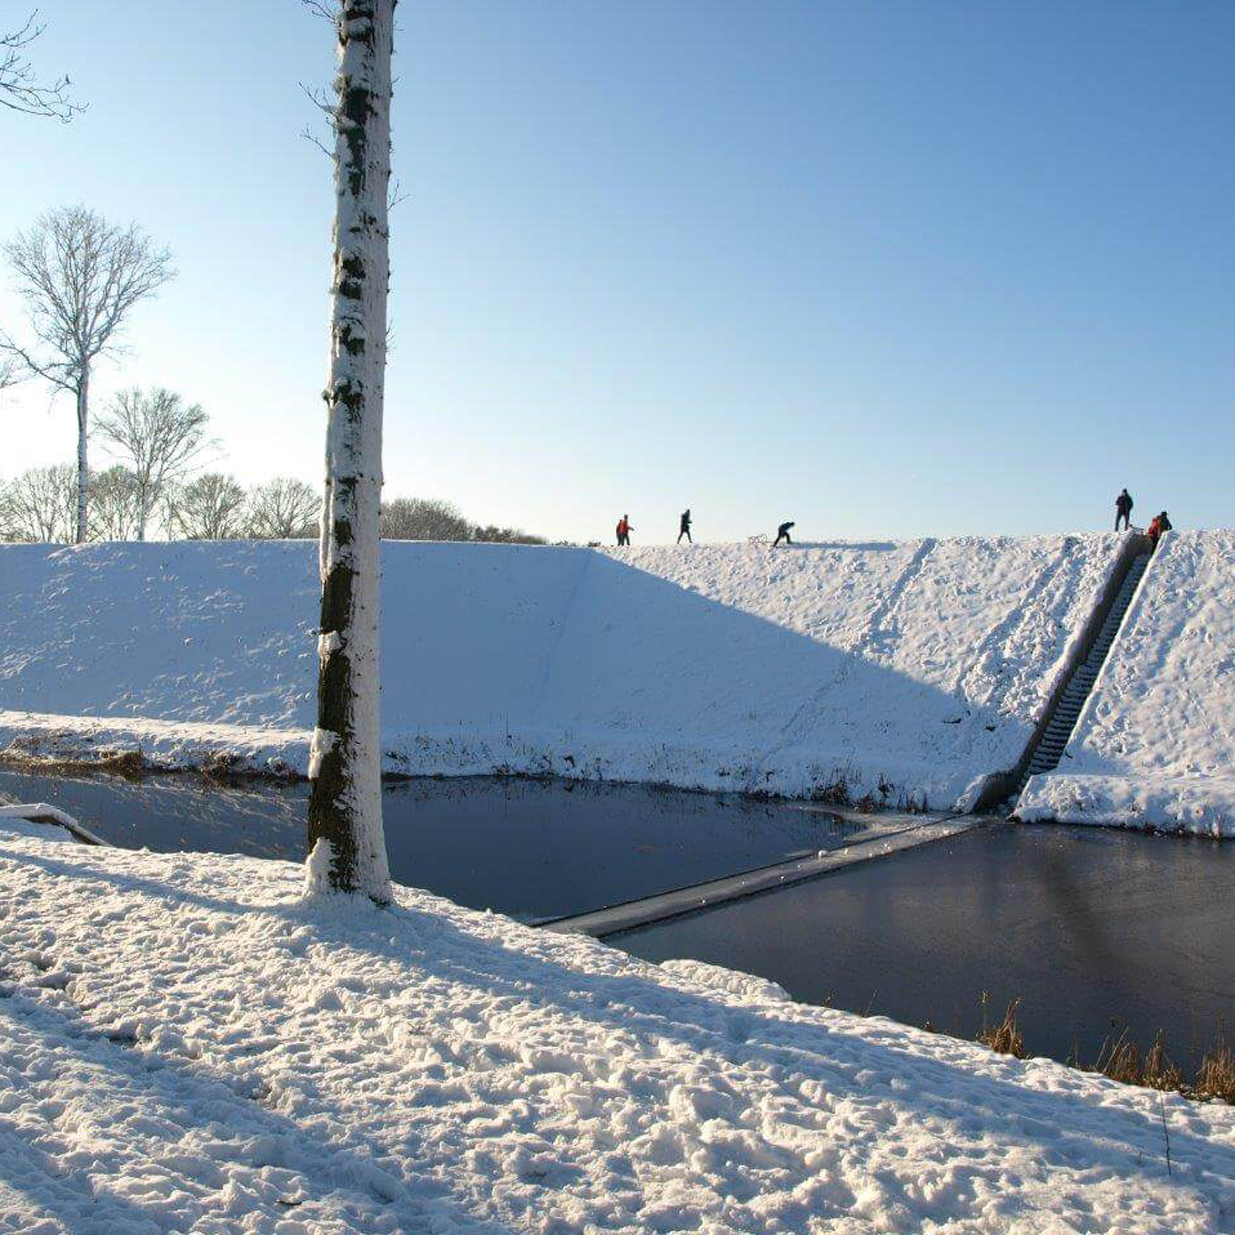 The Moses Bridge in a snowy landscape